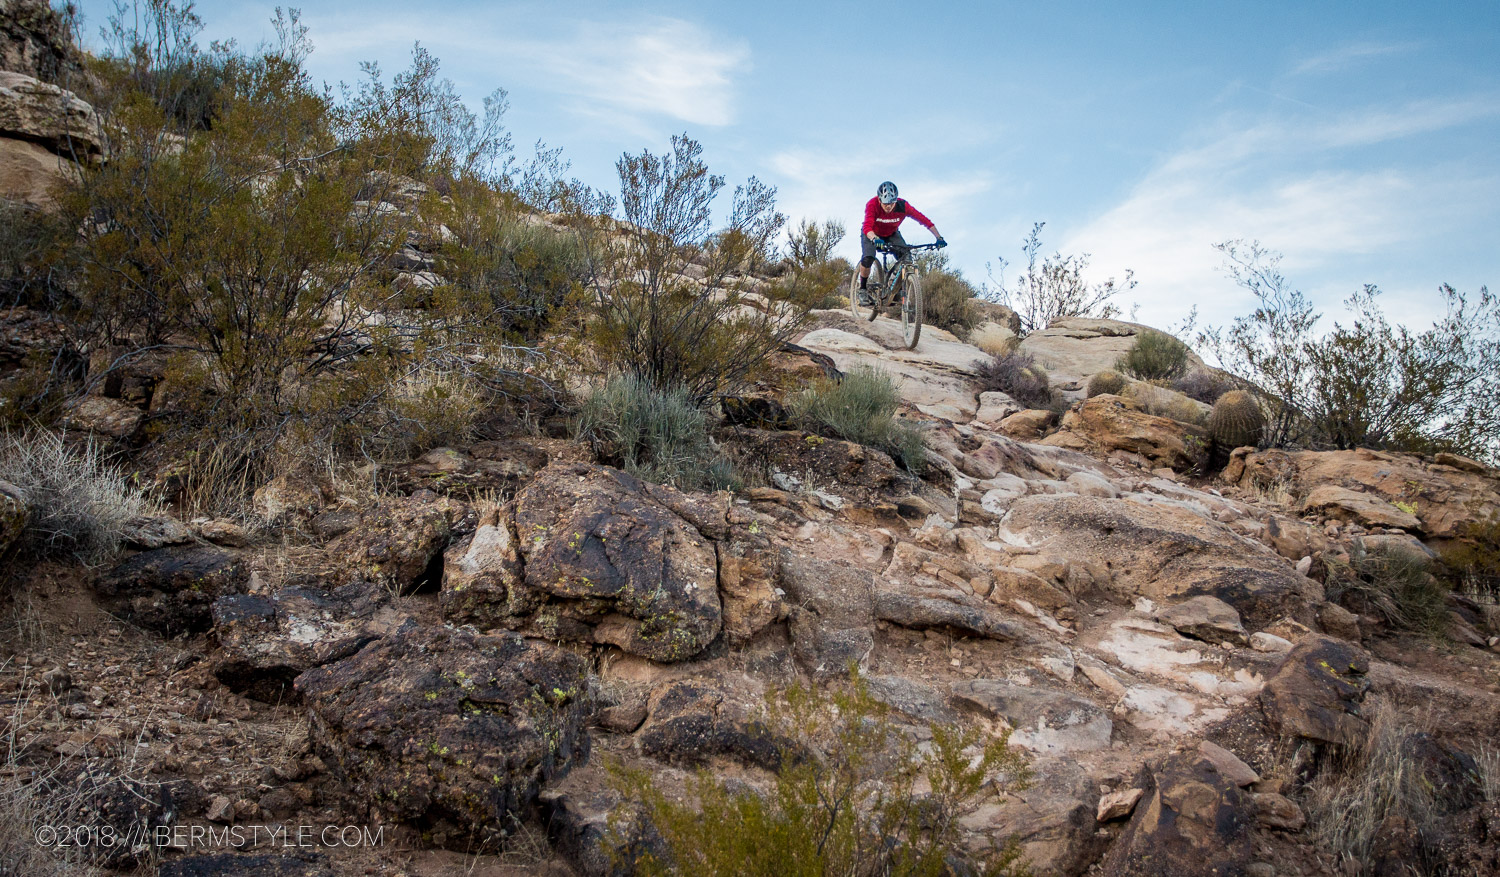 """Riding down the """"Waterfall"""" on the Barrel Trail in St. George, Utah."""